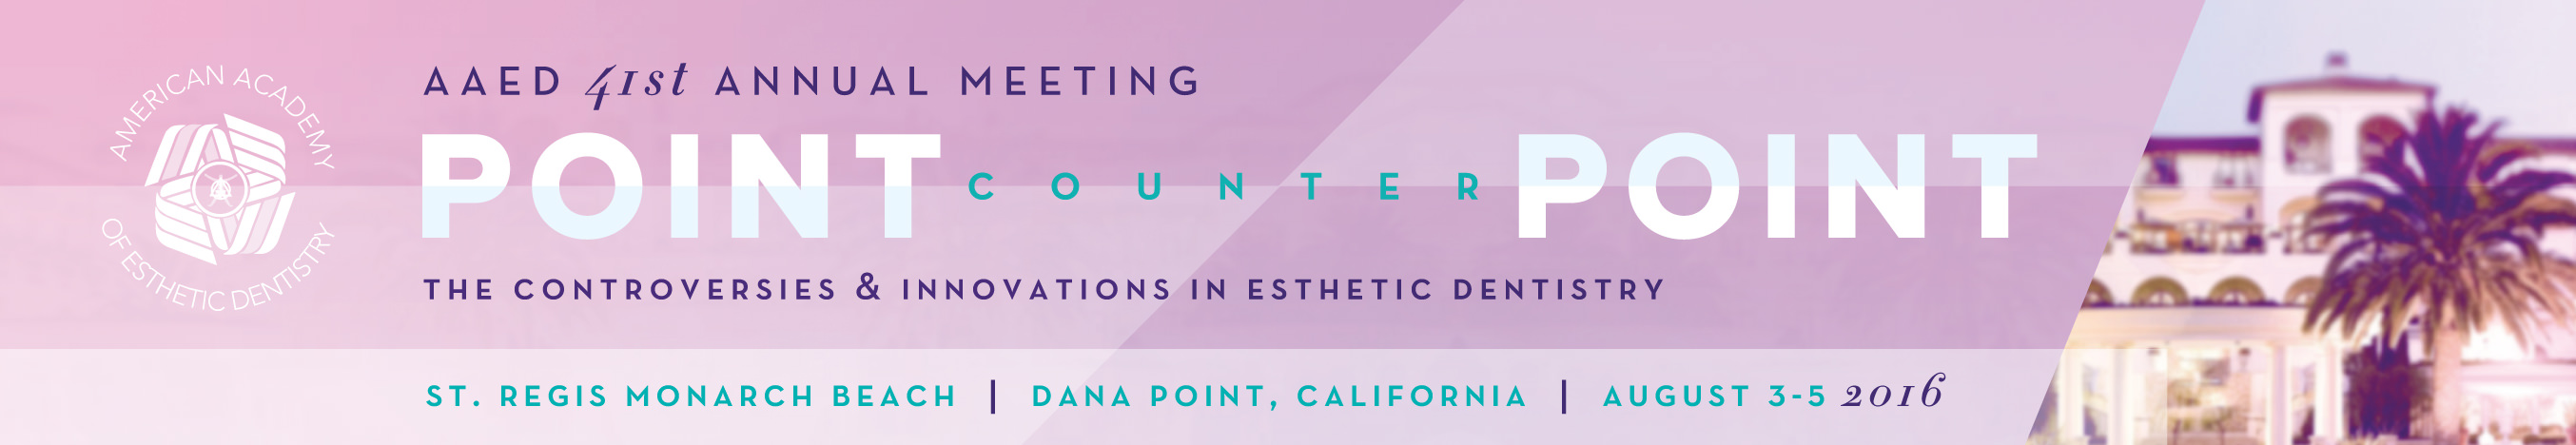 41st Annual Meeting - Point Counter Point